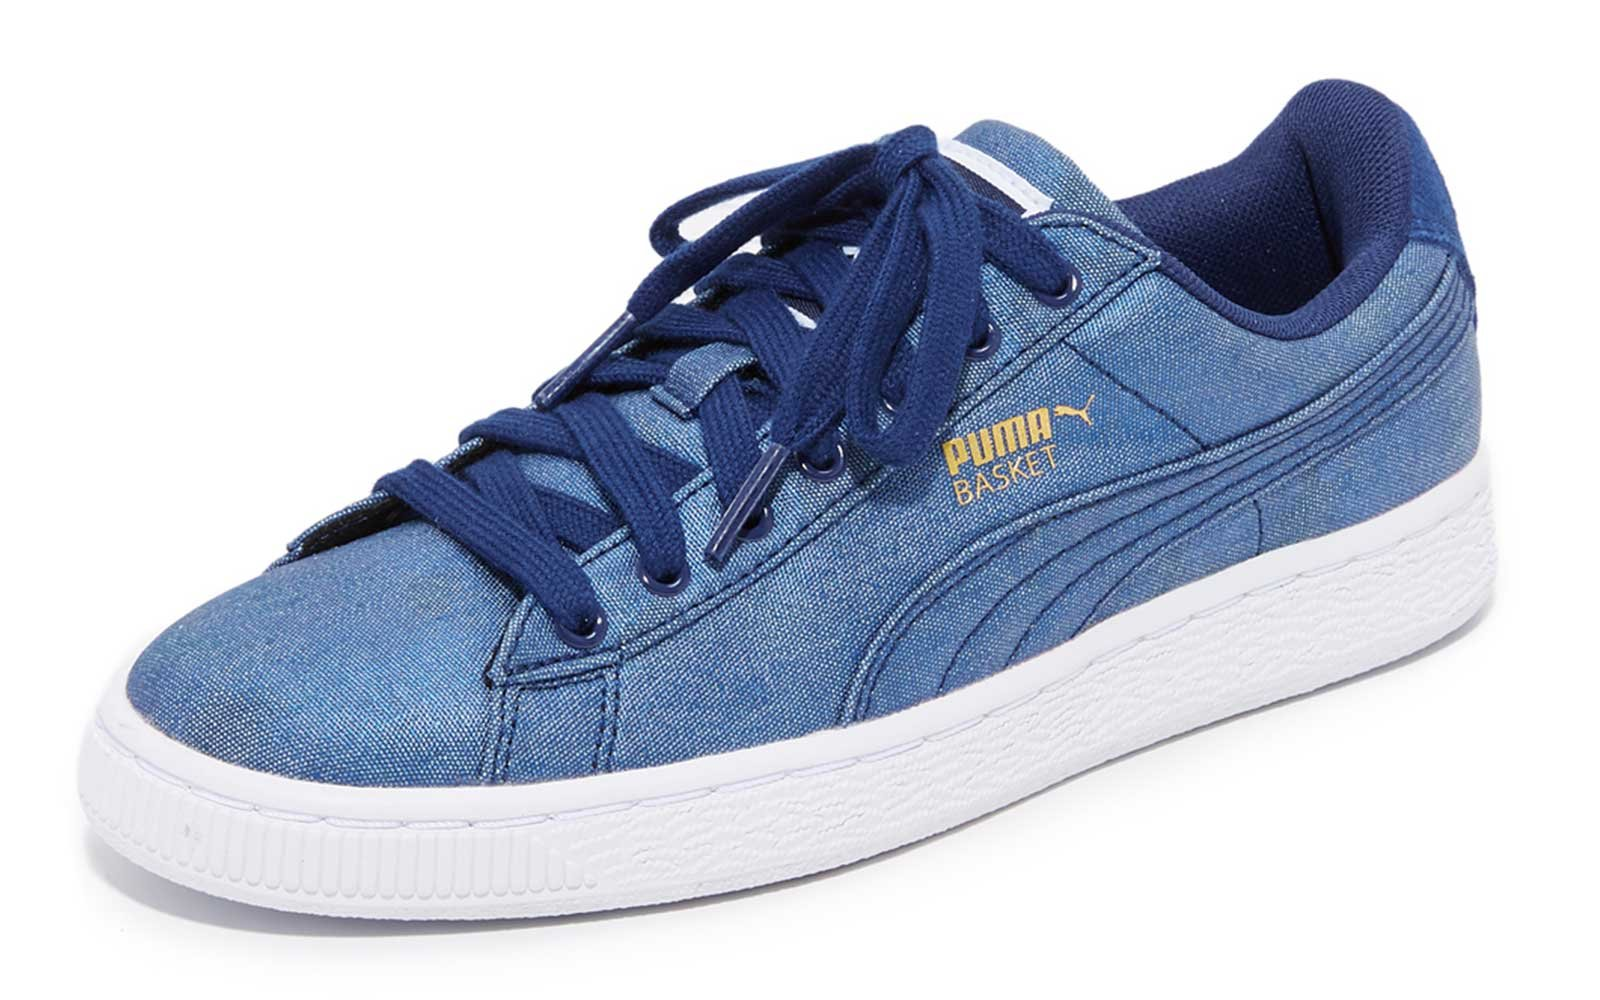 Puma Denim Sneakers